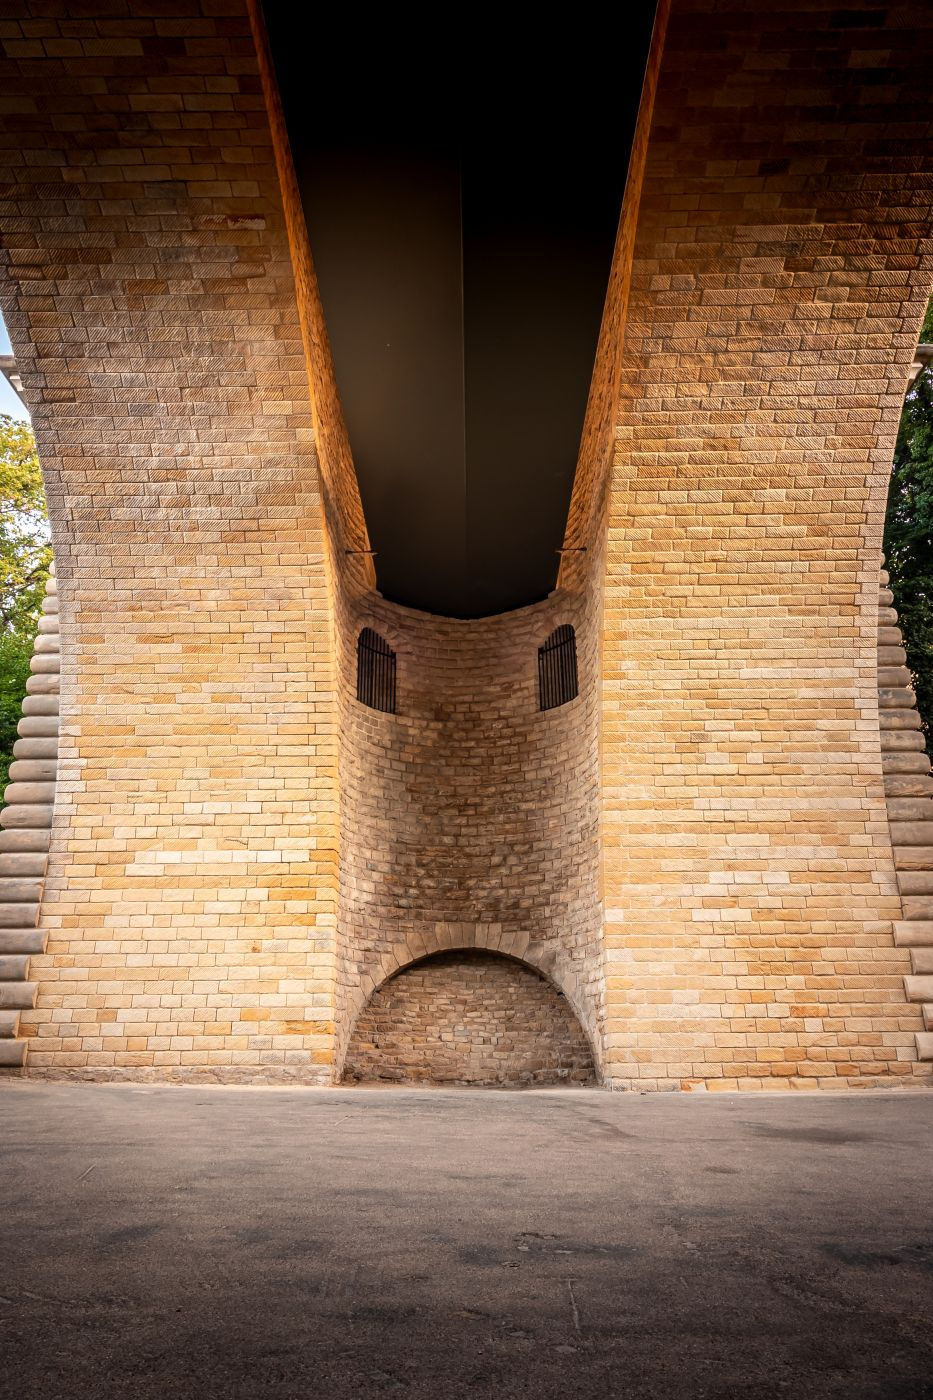 under the Pont Adolphe, Luxembourg